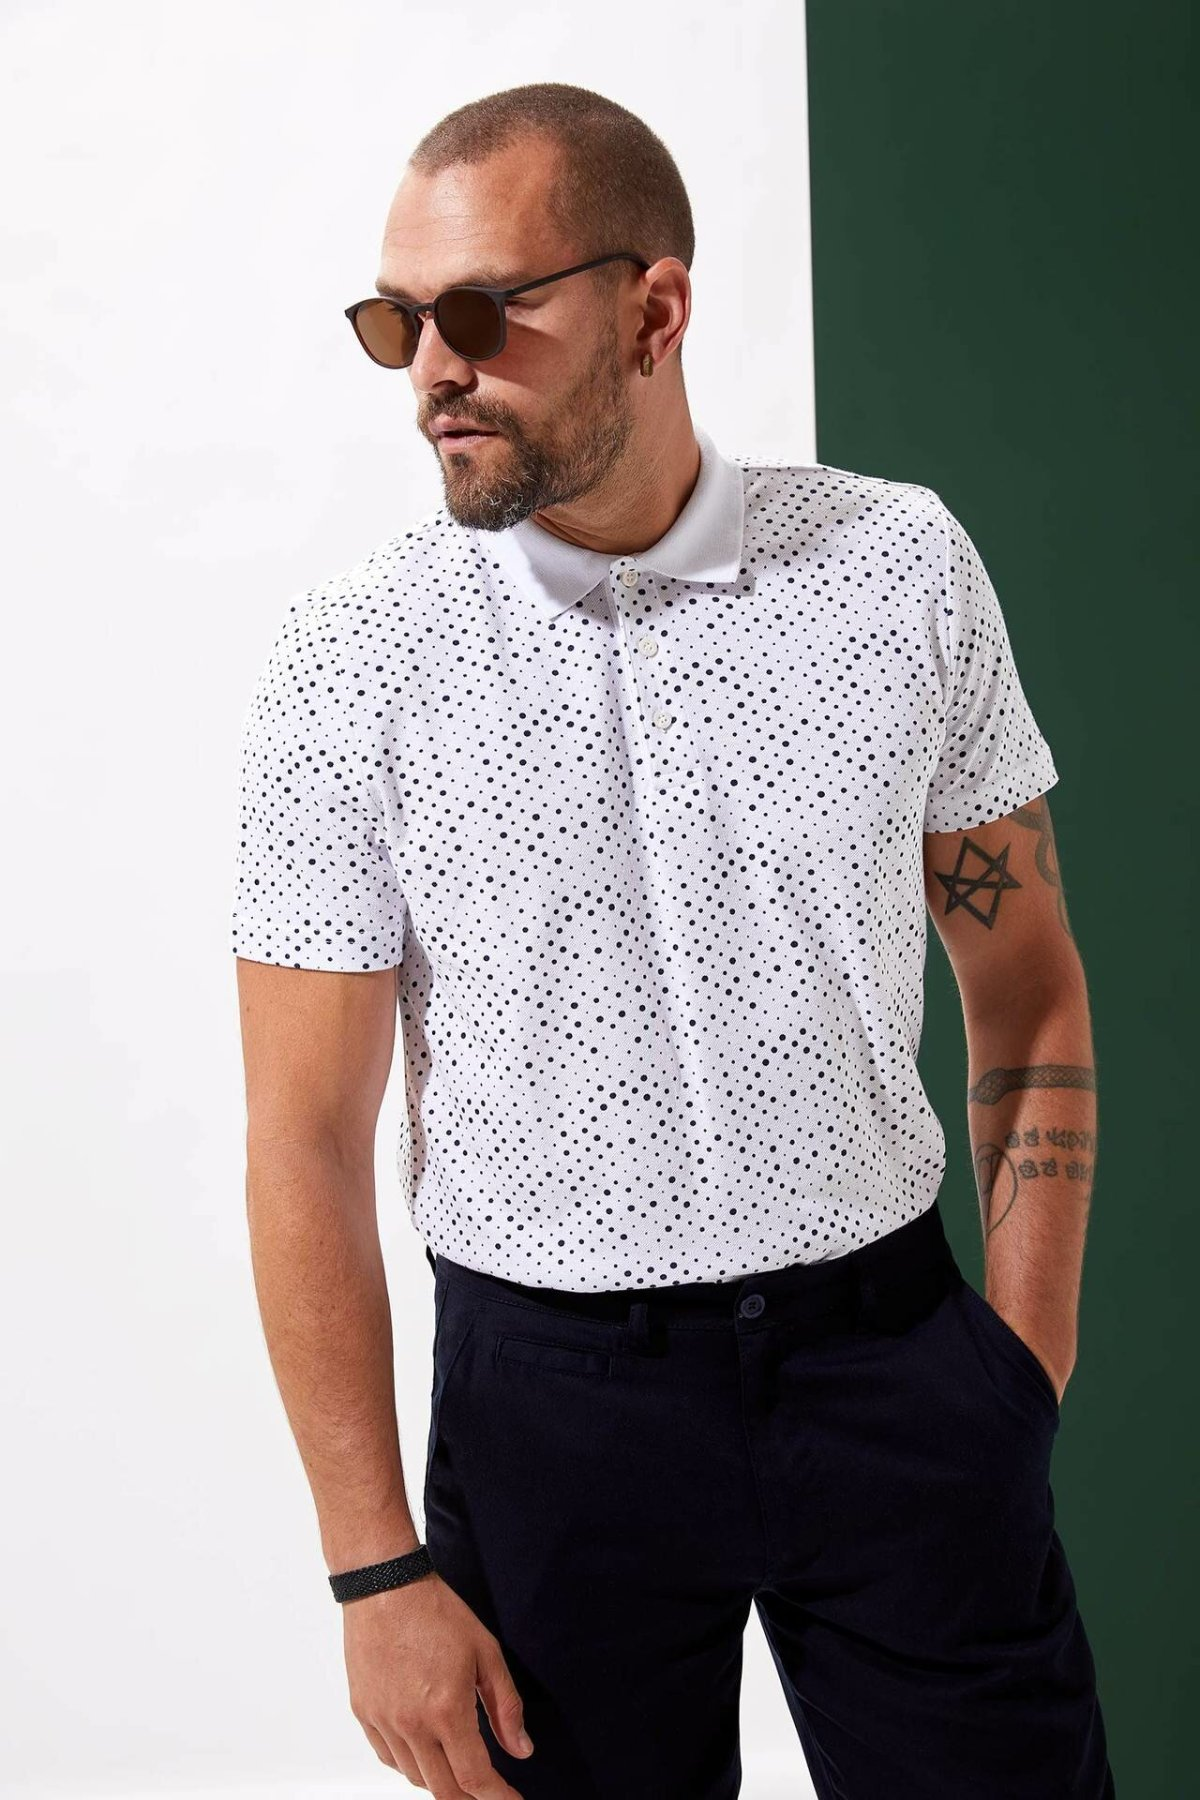 DeFacto Summer Light Color Fashion Leisure Mens Short-Sleeved Small Dot Pattern Polos Shirts Male Casual Lapel Polos-L5731AZ19AU-L5731AZ19AU